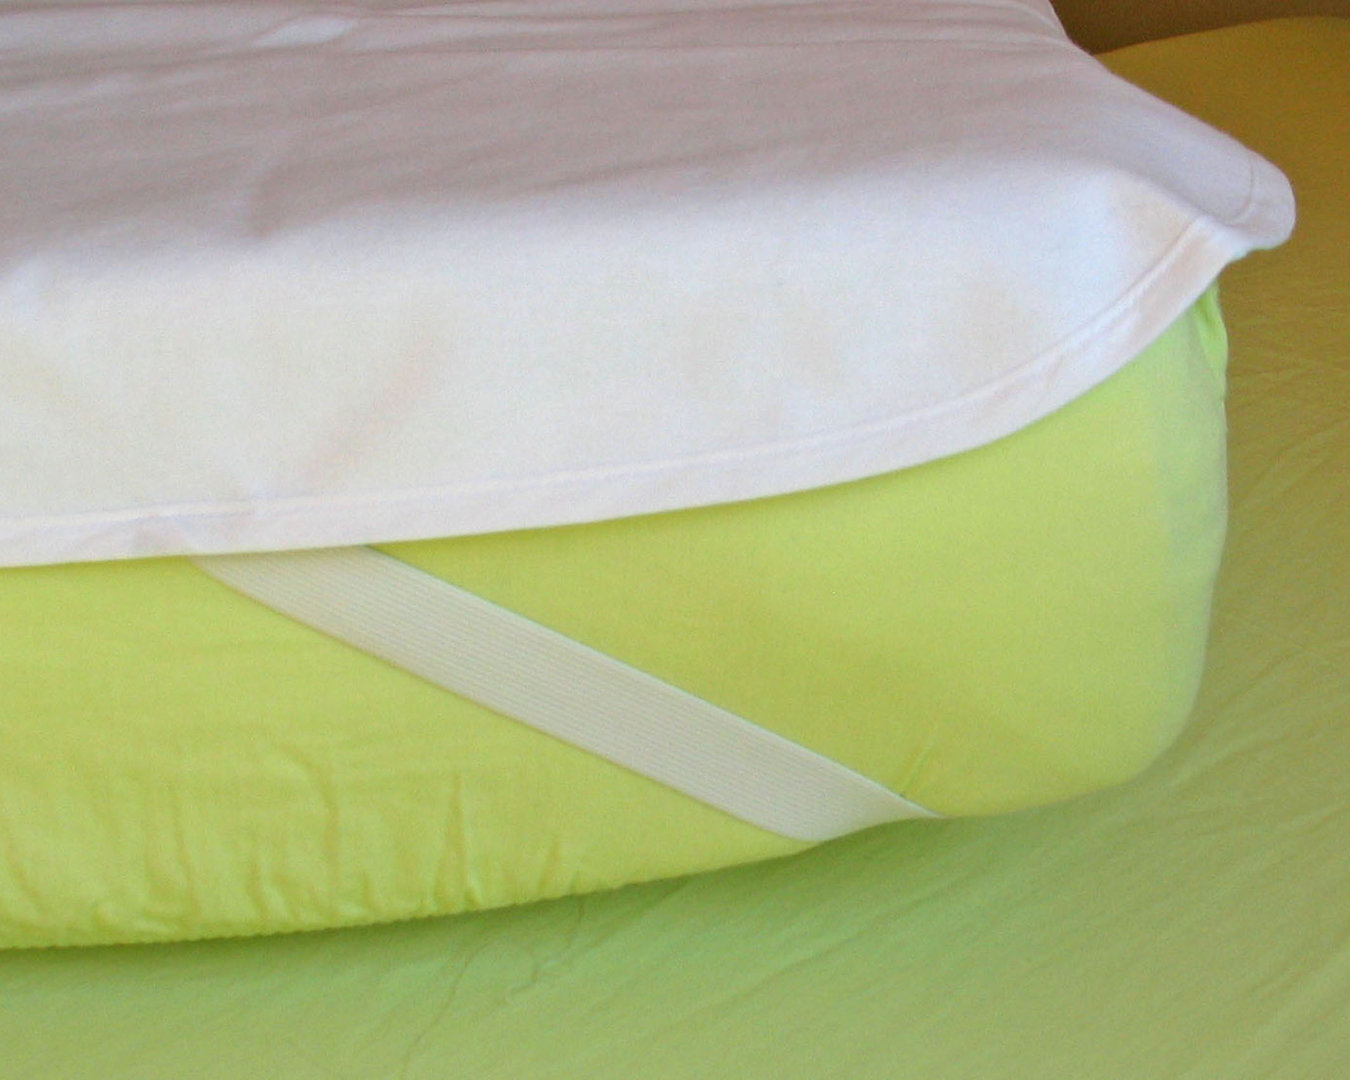 Mattress Protection Incontinence Pad 90/100 x 200 cm